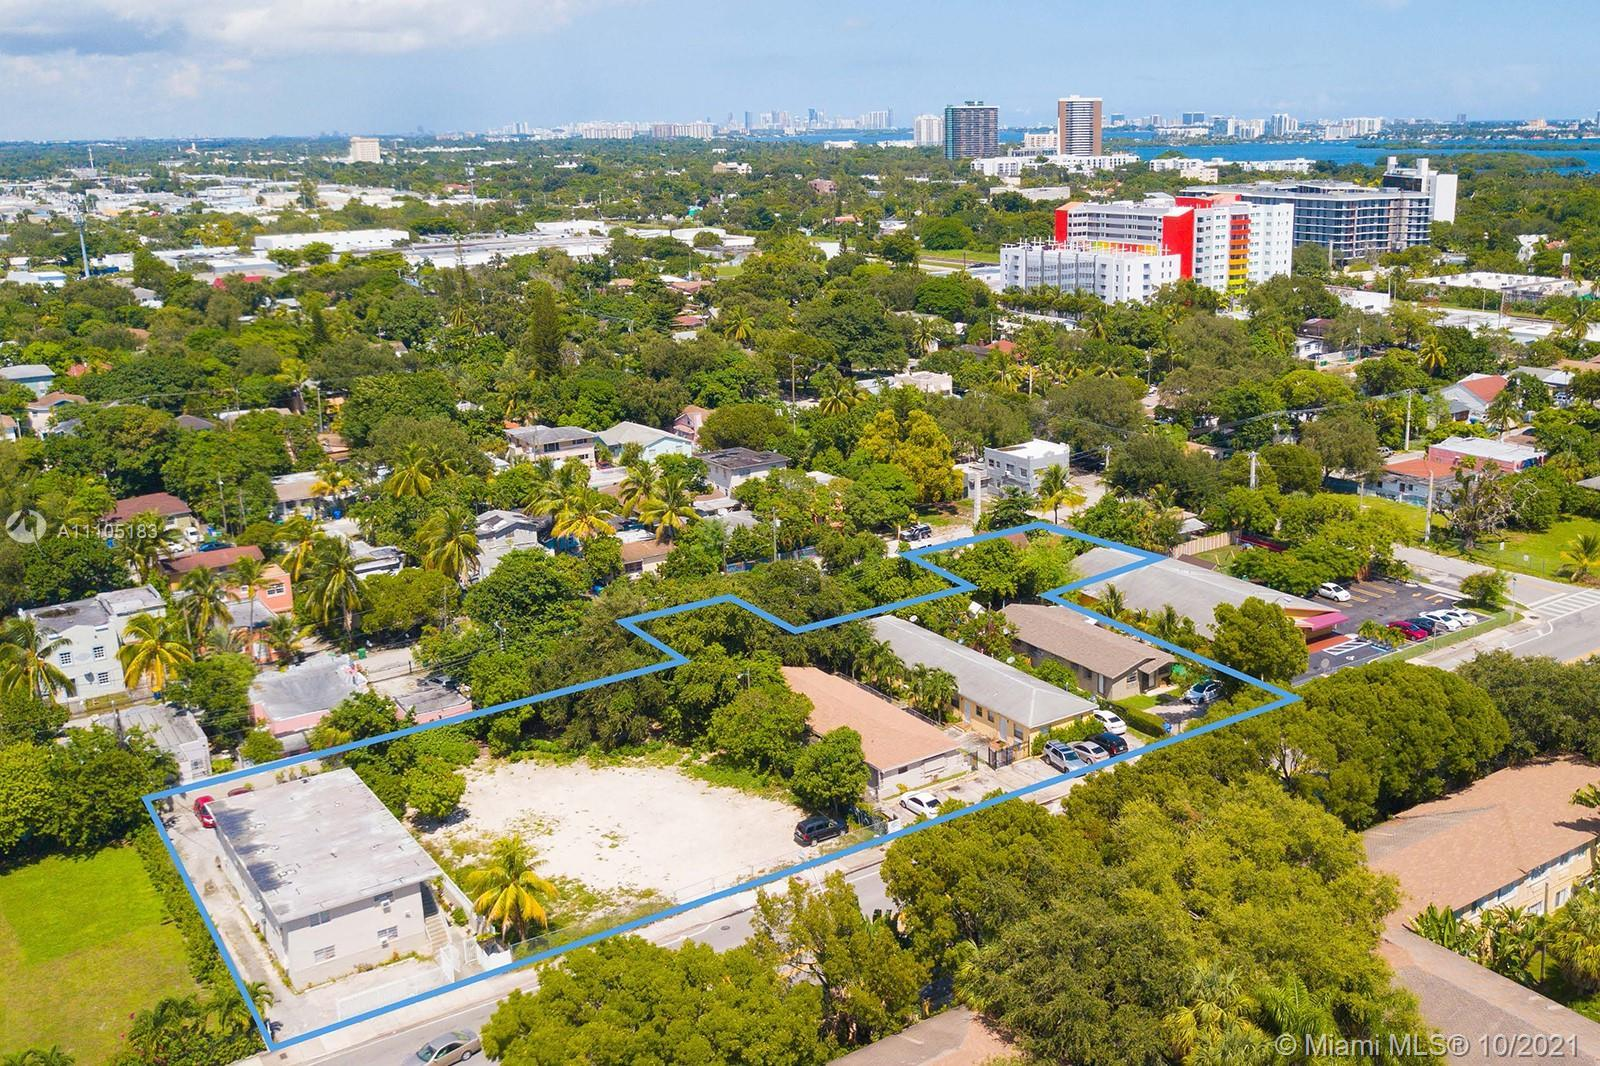 Pleased to exclusively offer the opportunity to acquire a Covered Land Play in Little Haiti, one of